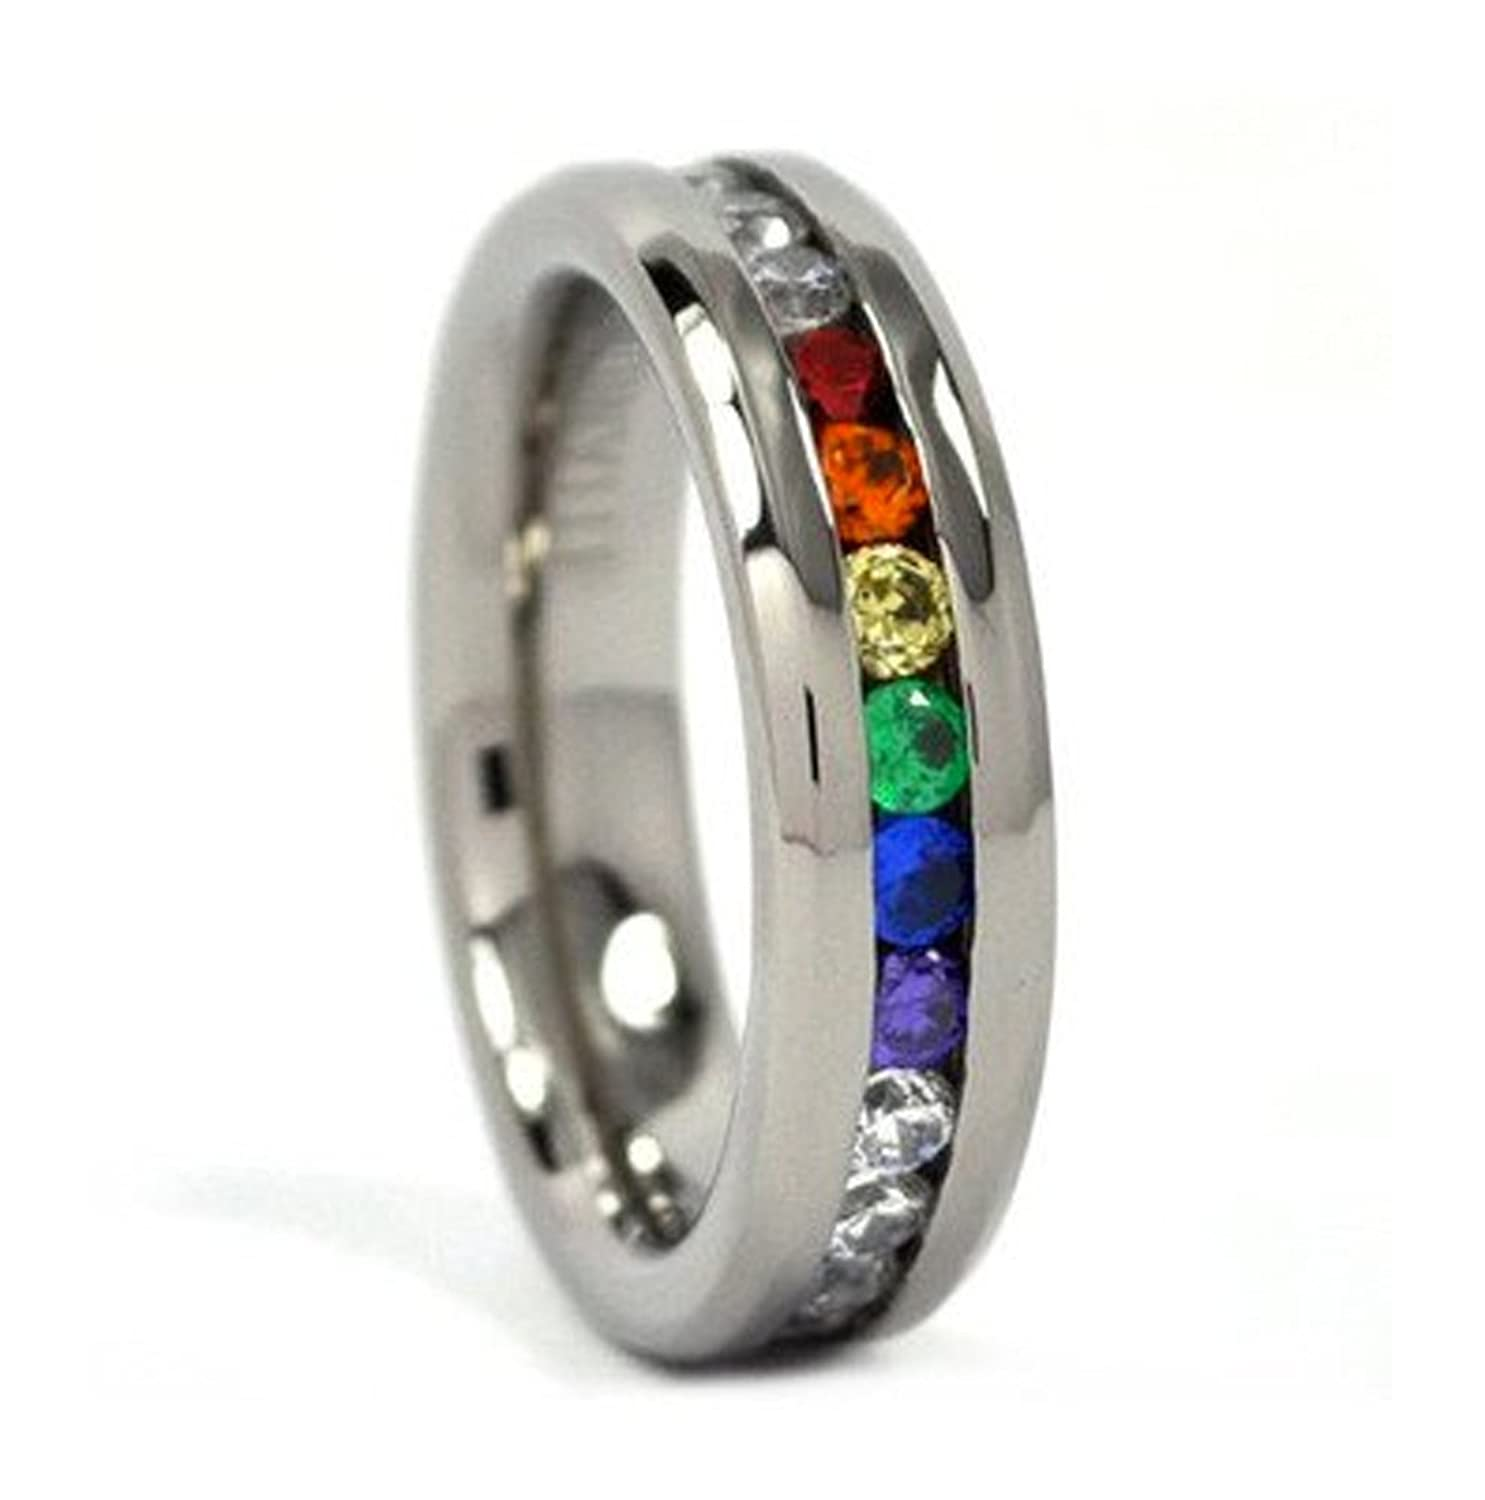 rainbow lara item color comrades ring half new jewelry from fashion in bands wedding silver steel gay wholesale rings stainless titanium six